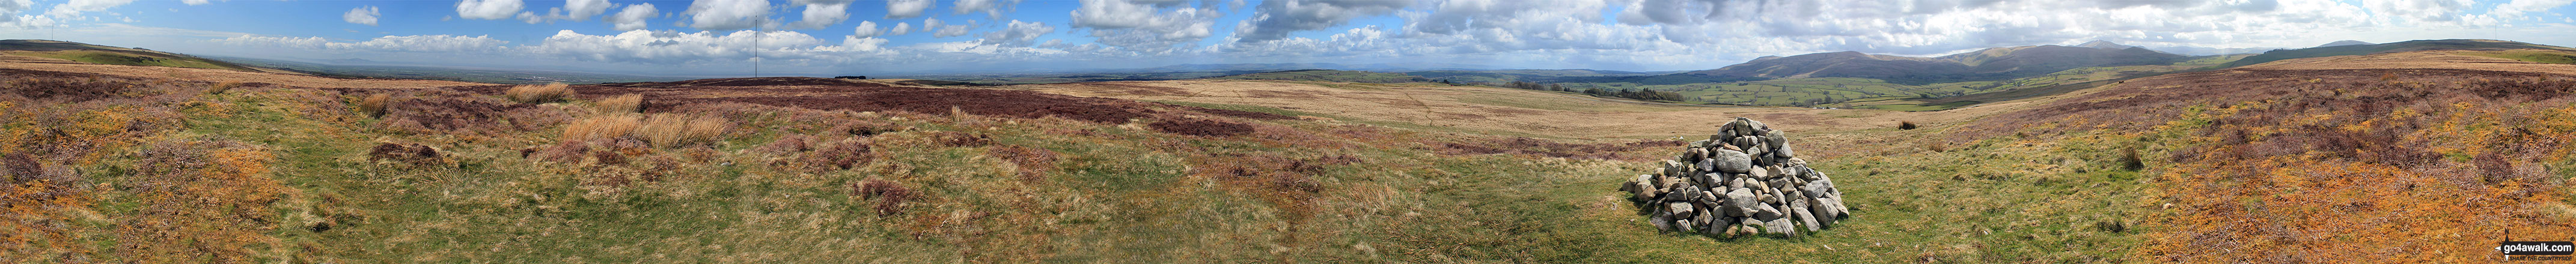 Panorama from the summit of Faulds Brow